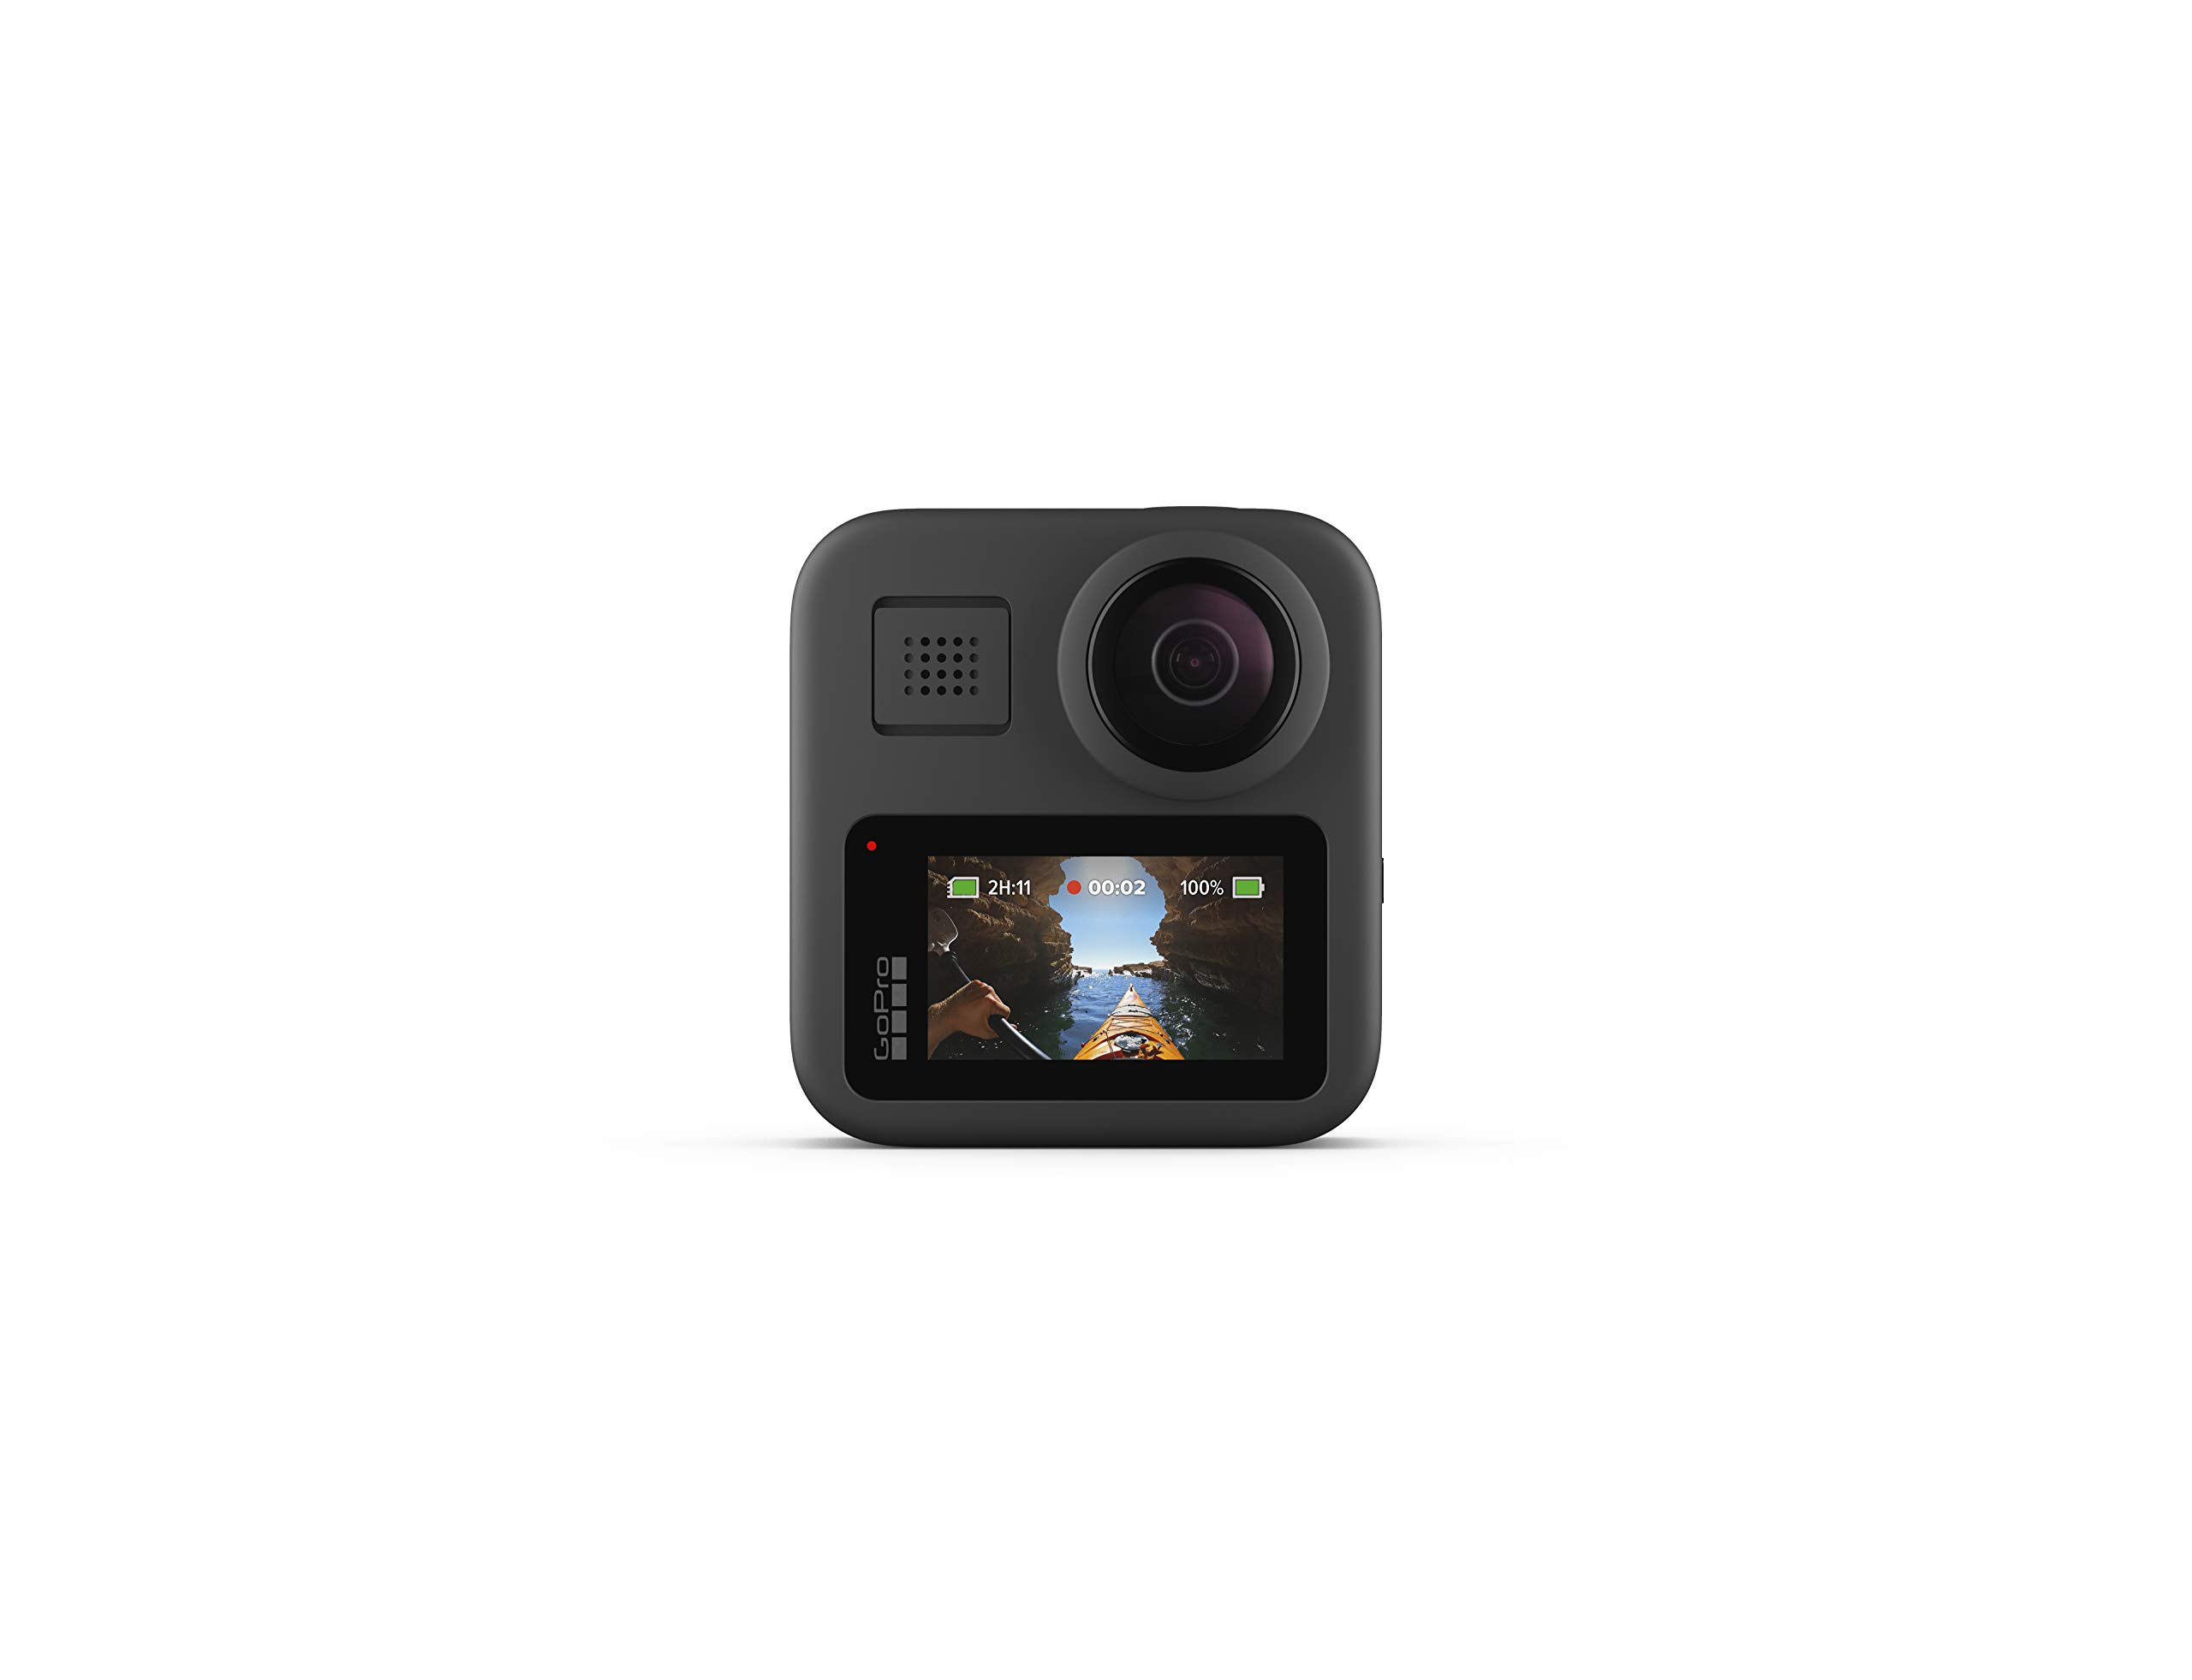 GoPro MAX - Waterproof 360 + Traditional Camera with Touch Screen Spherical 5.6K30 HD Video 16.6MP 360 Photos 1080p Live Streaming Stabilization by GoPro